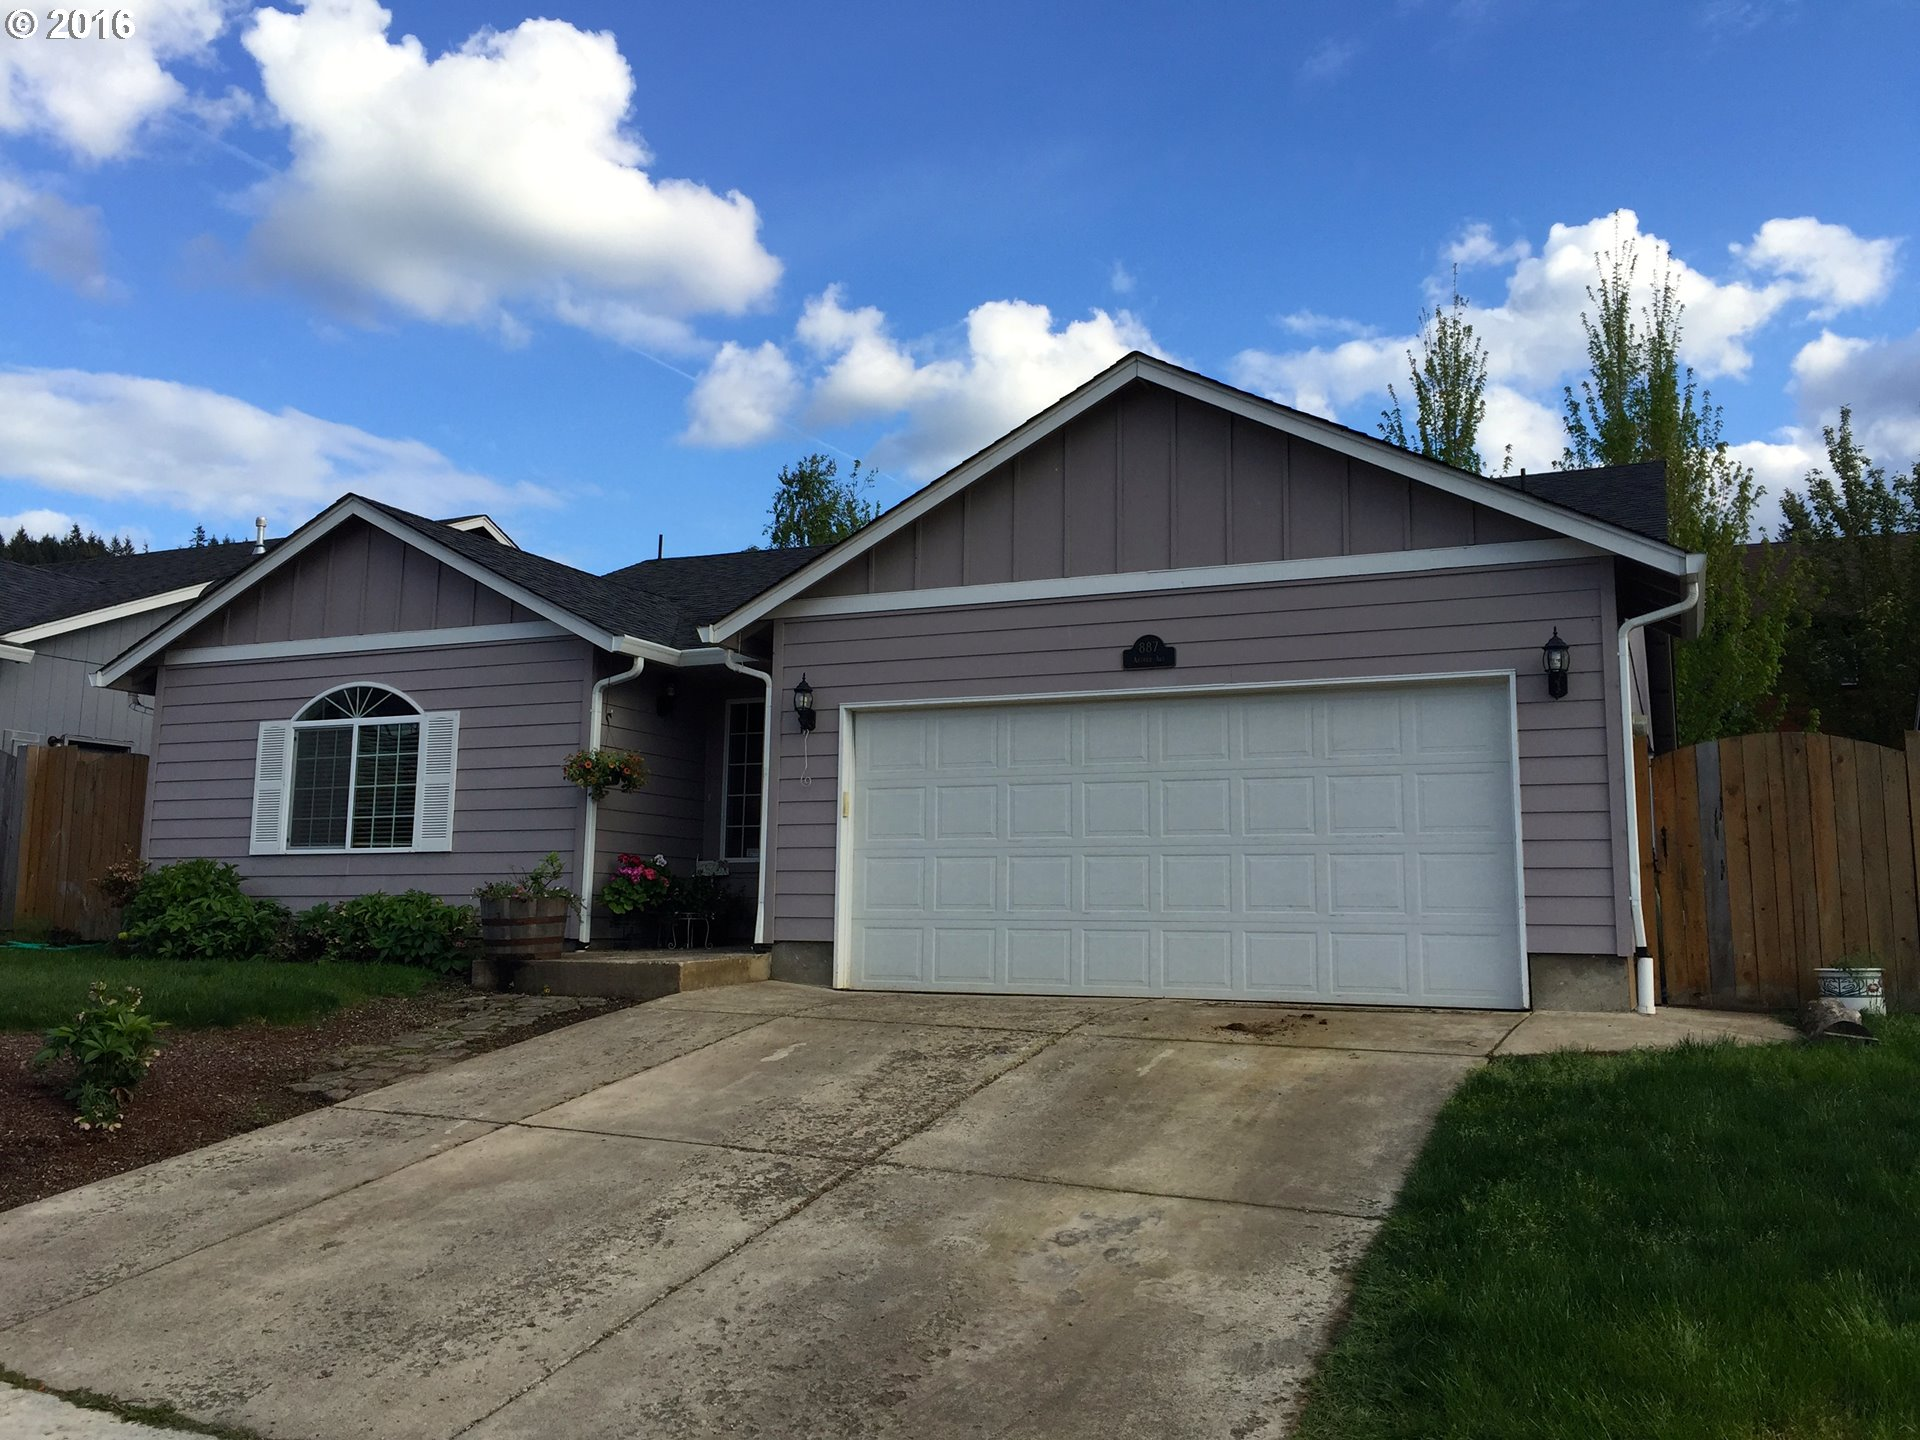 887 Arthur Ave, Cottage Grove, OR